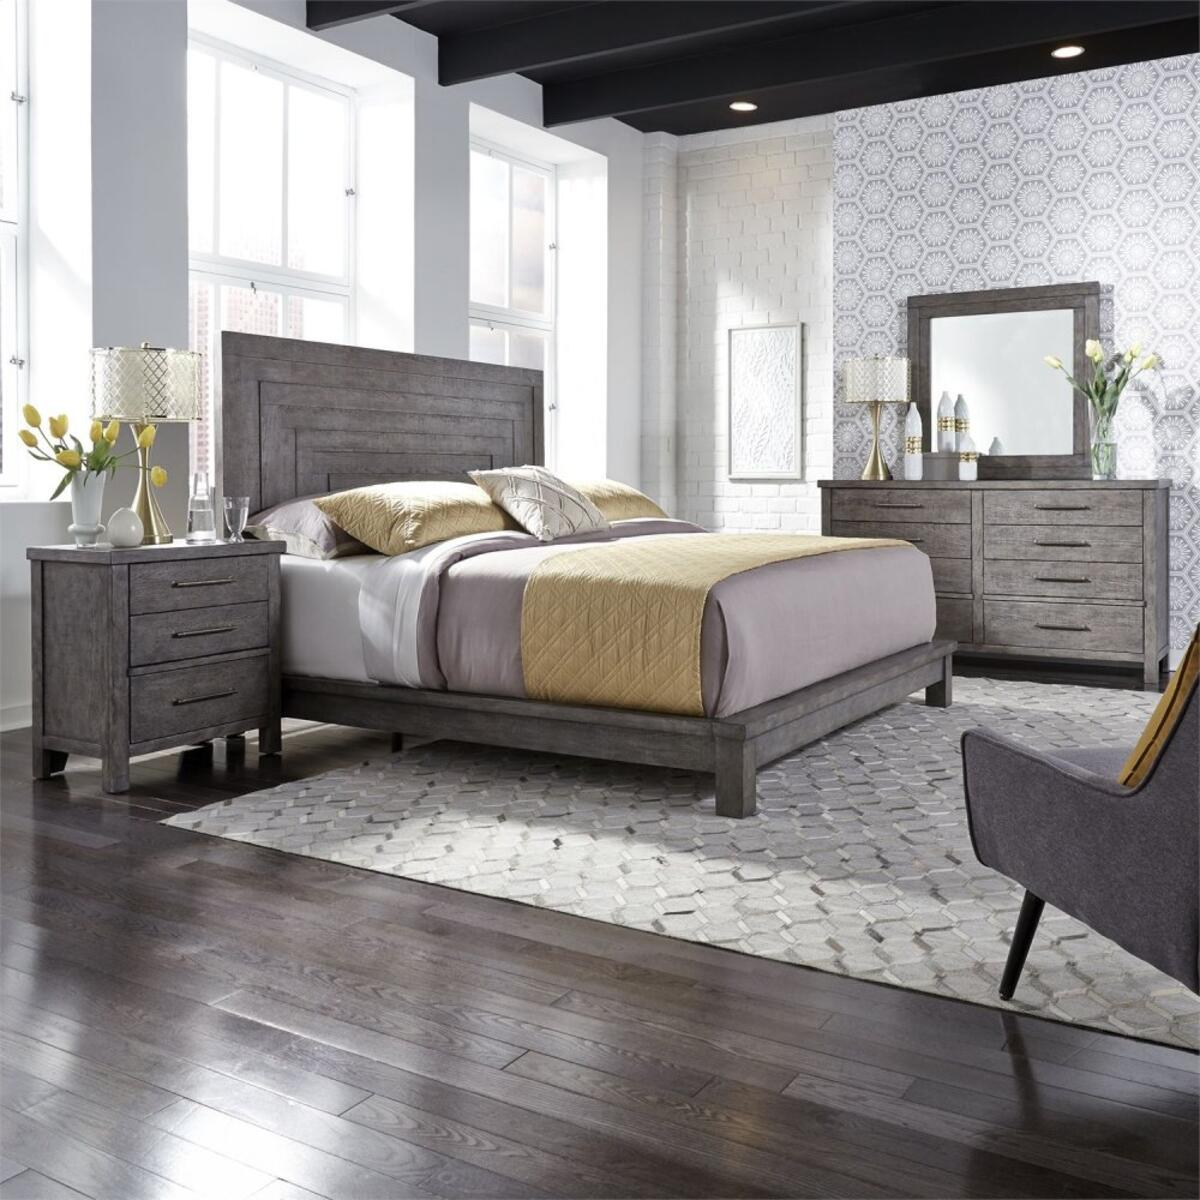 King Platform Bed, Dresser & Mirror, Night Stand